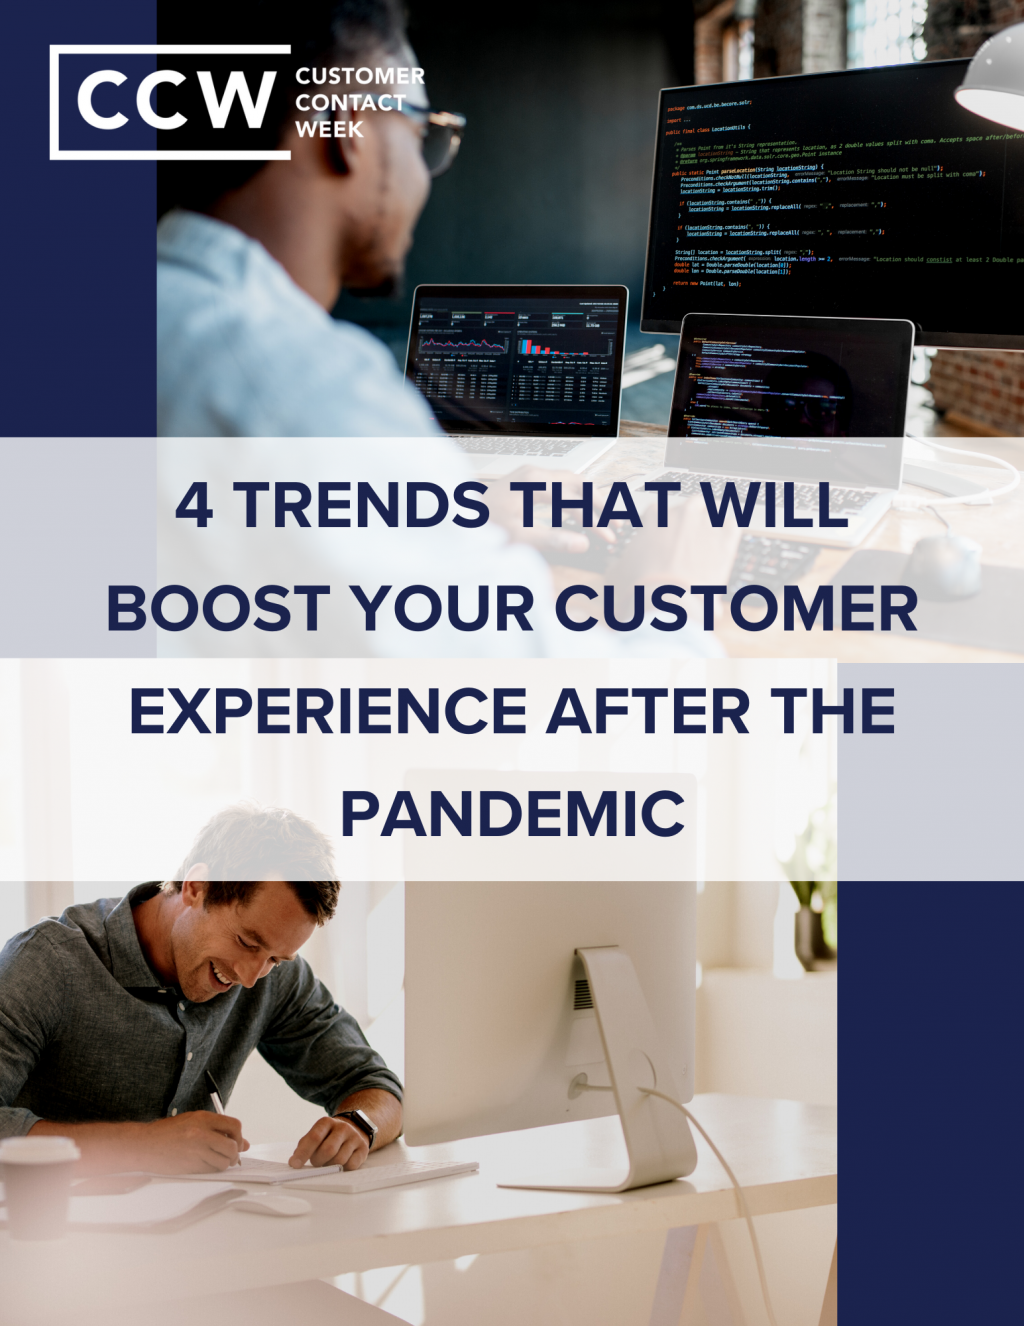 4 Trends That Will Boost Your Customer Experience After The Pandemic